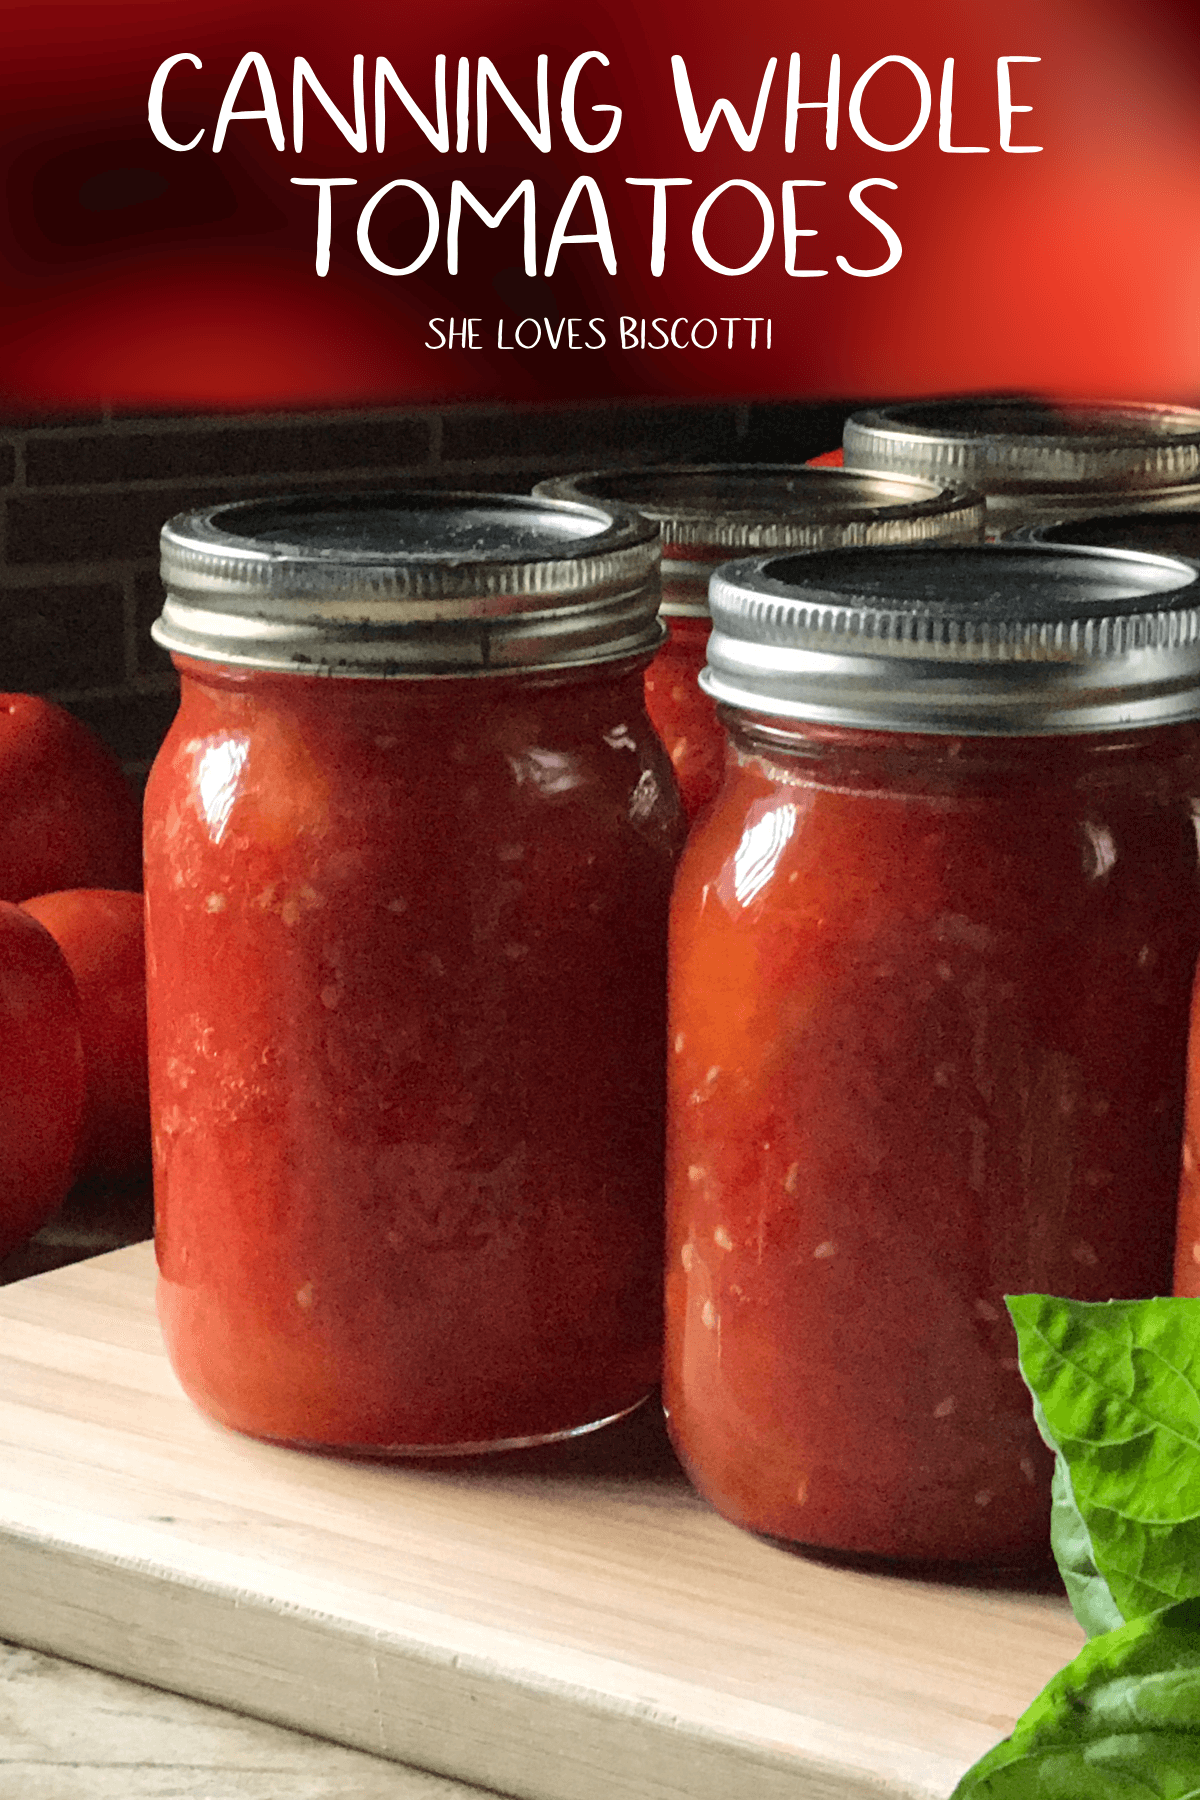 A few jars of canned whole tomatoes on a wooden board.